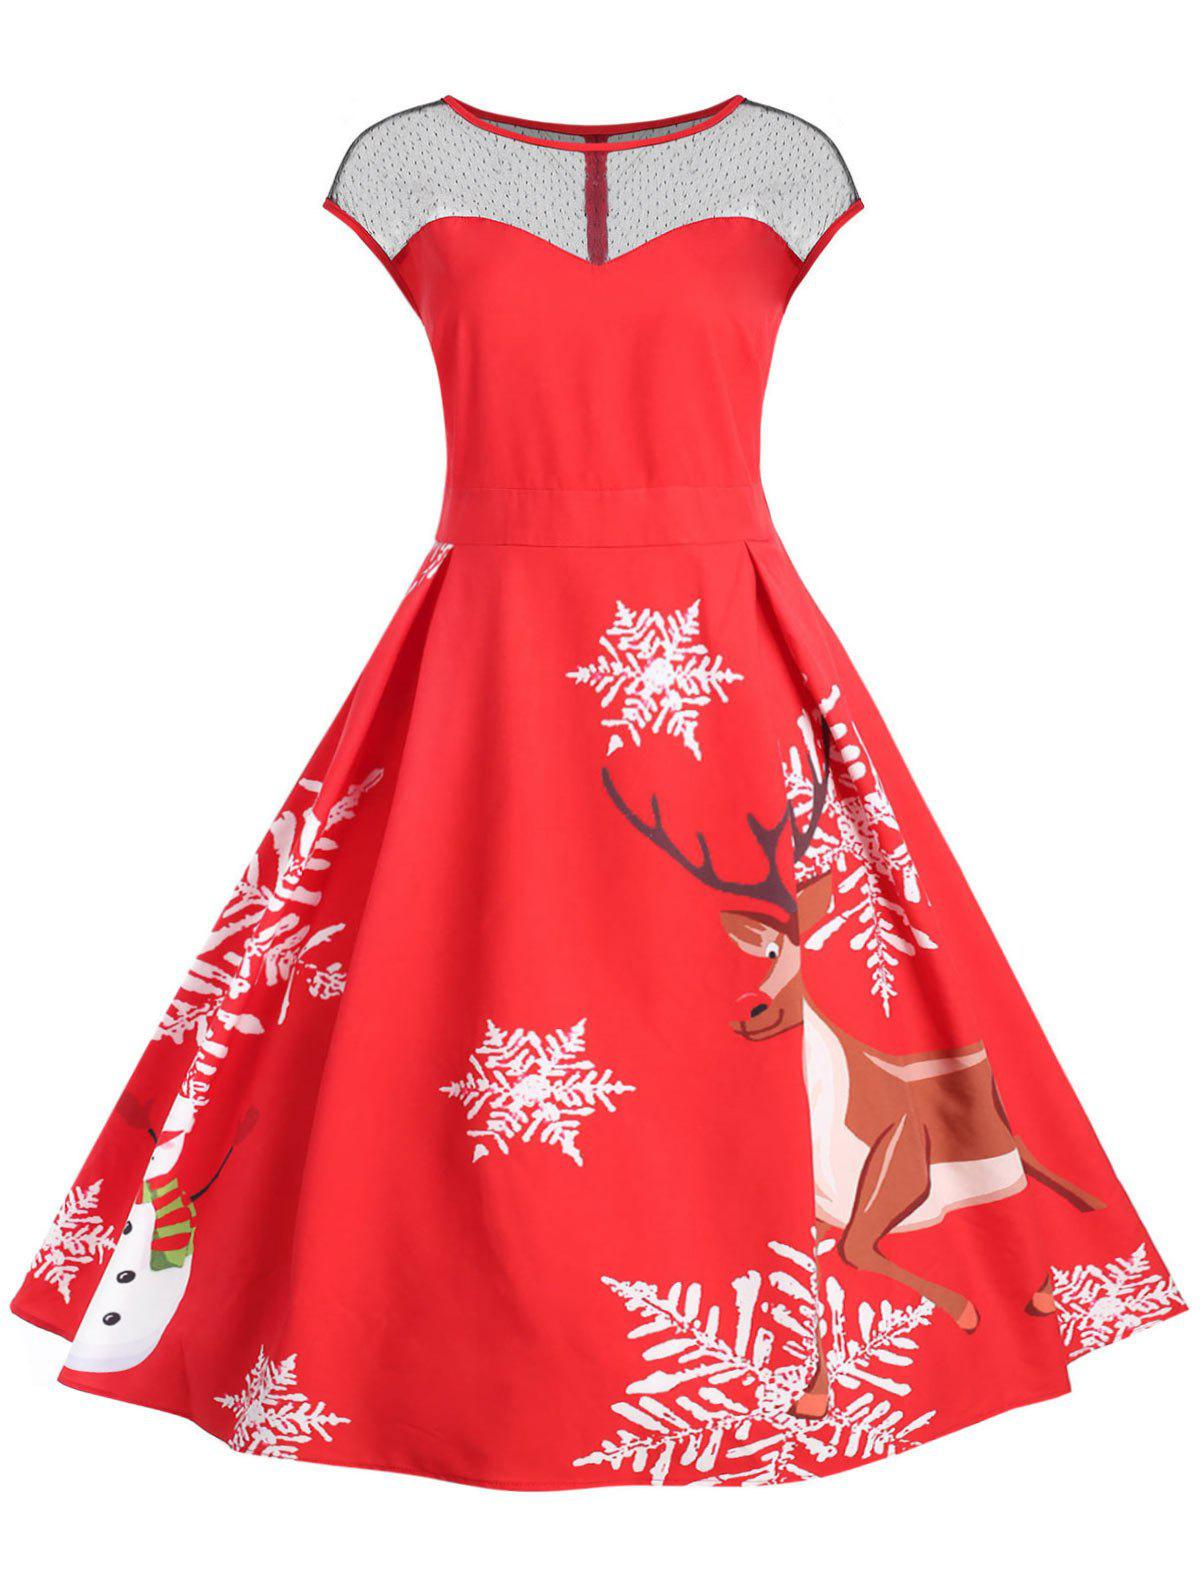 5293bd3b175 2019 Plus Size Vintage Christmas Flare Dress With Lace